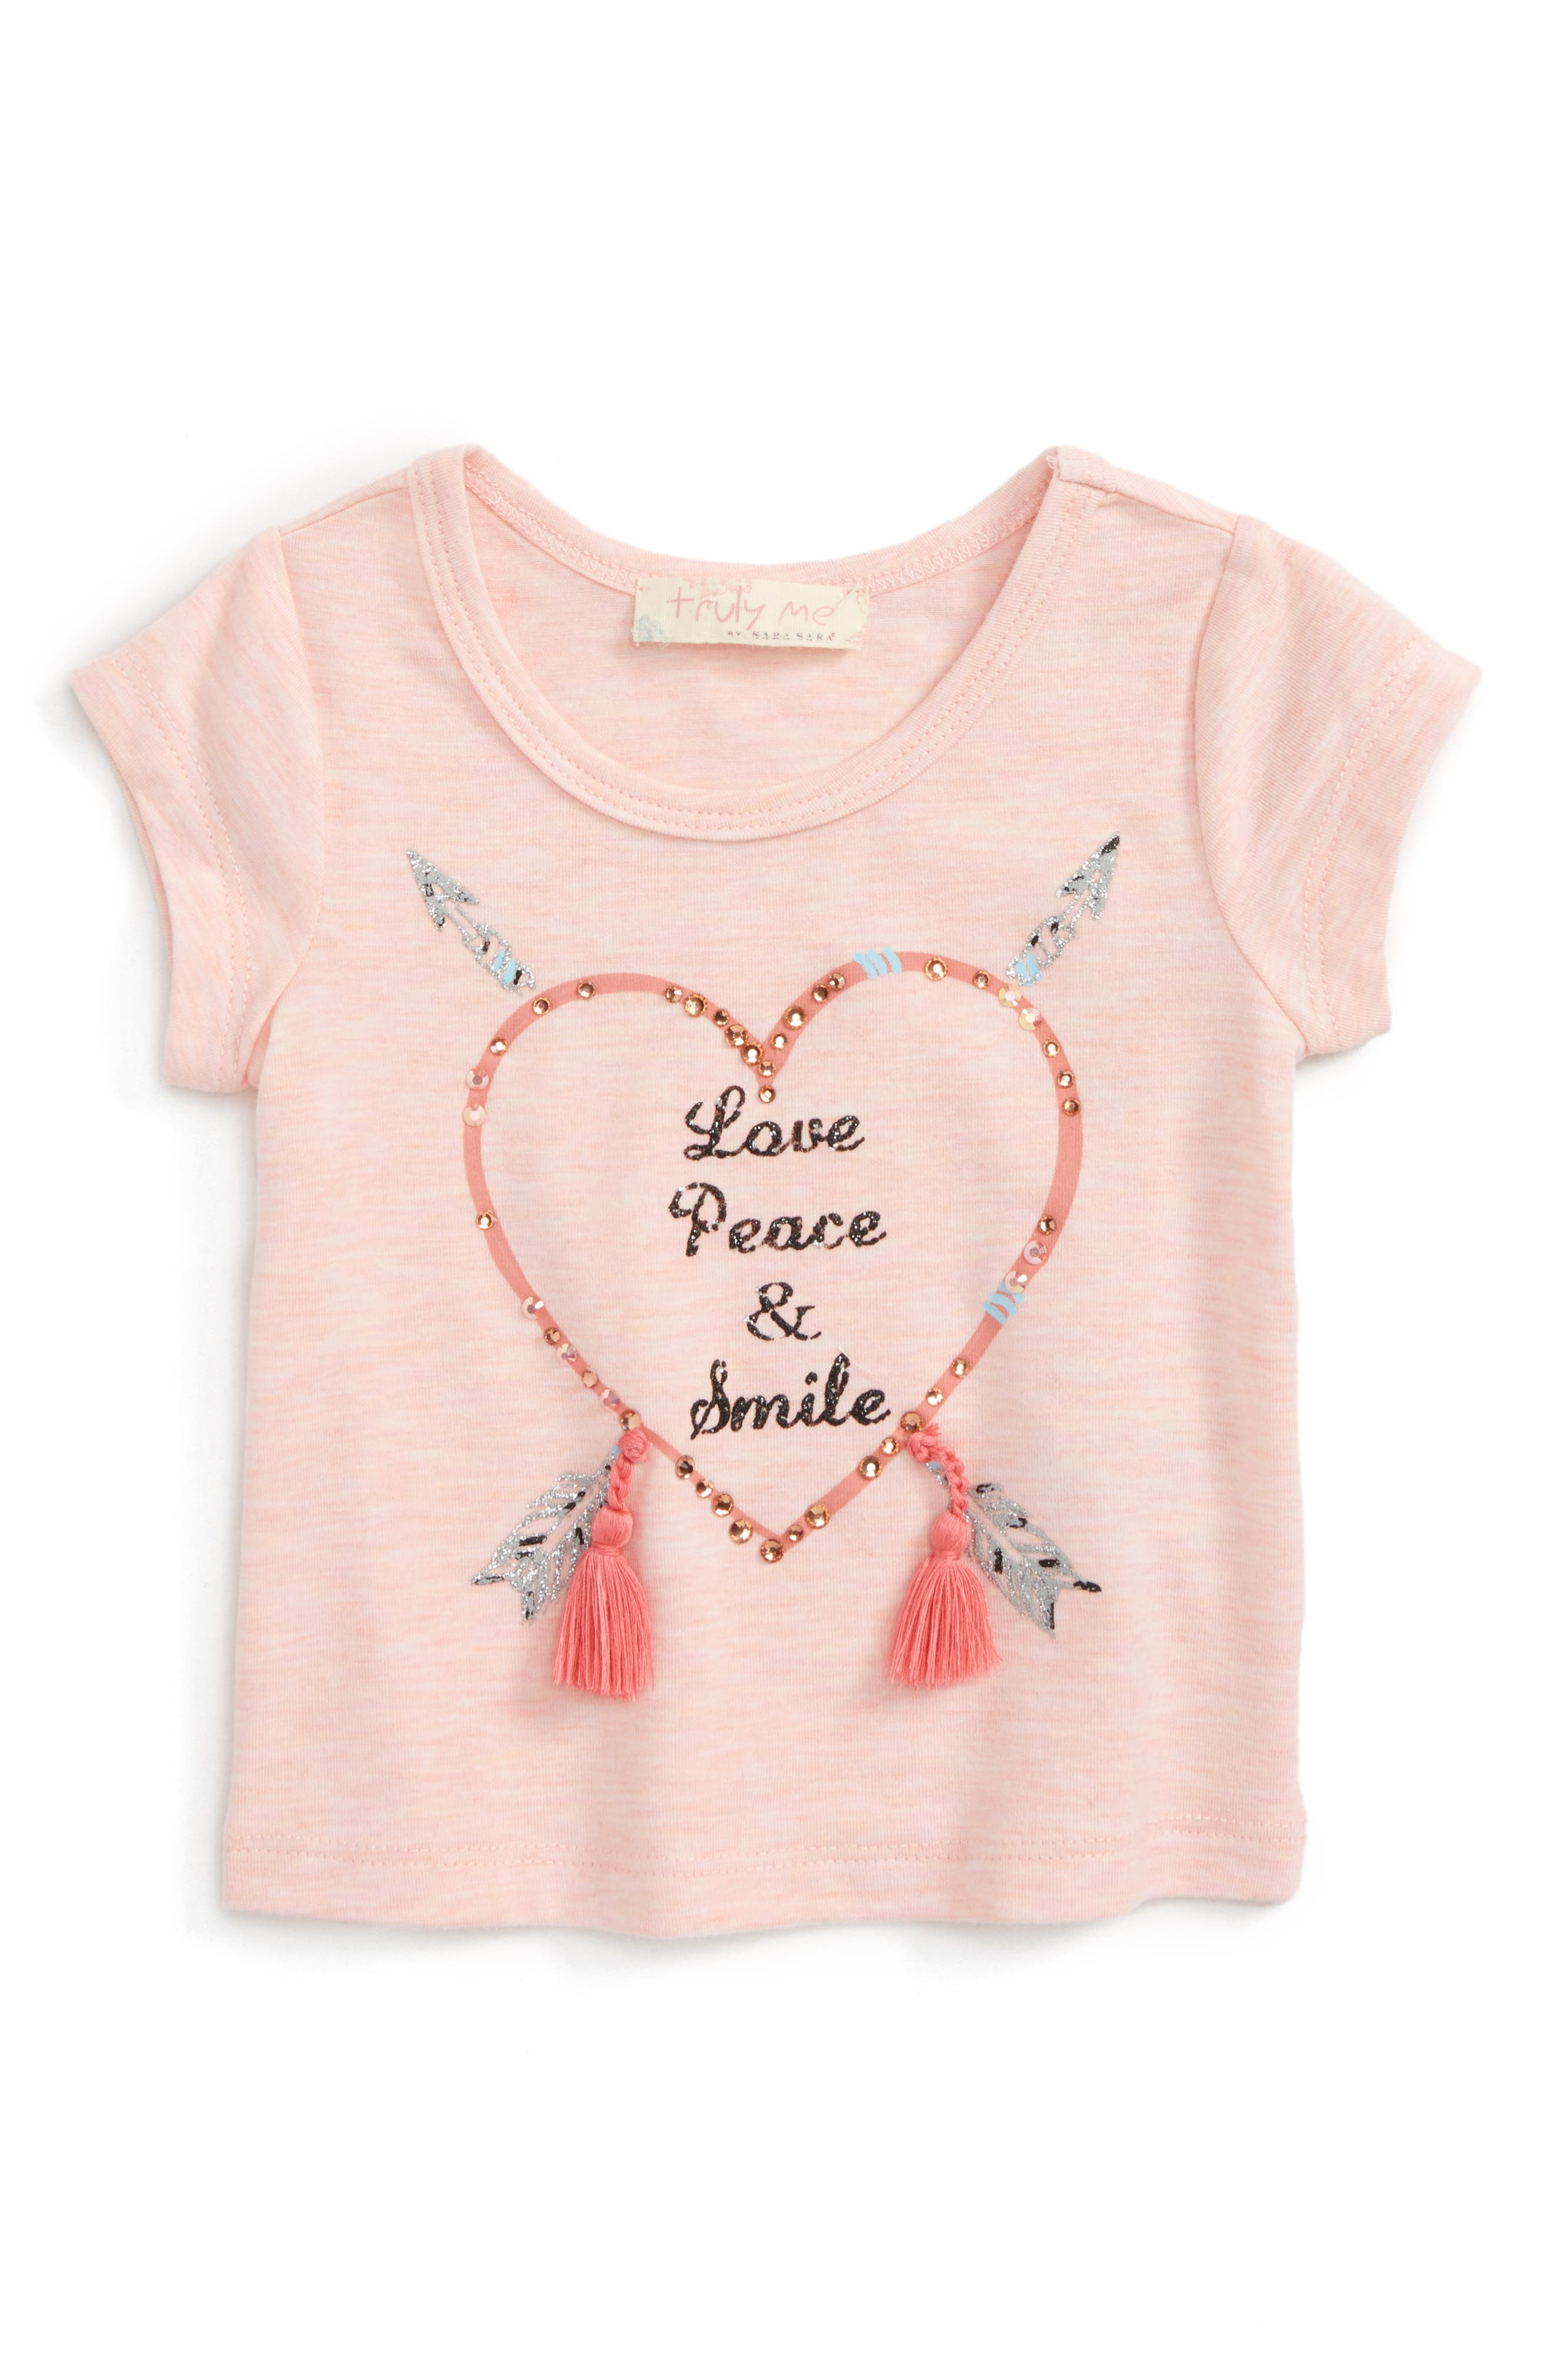 Main Image - Truly Me Love Peace Smile Tee (Baby Girls)